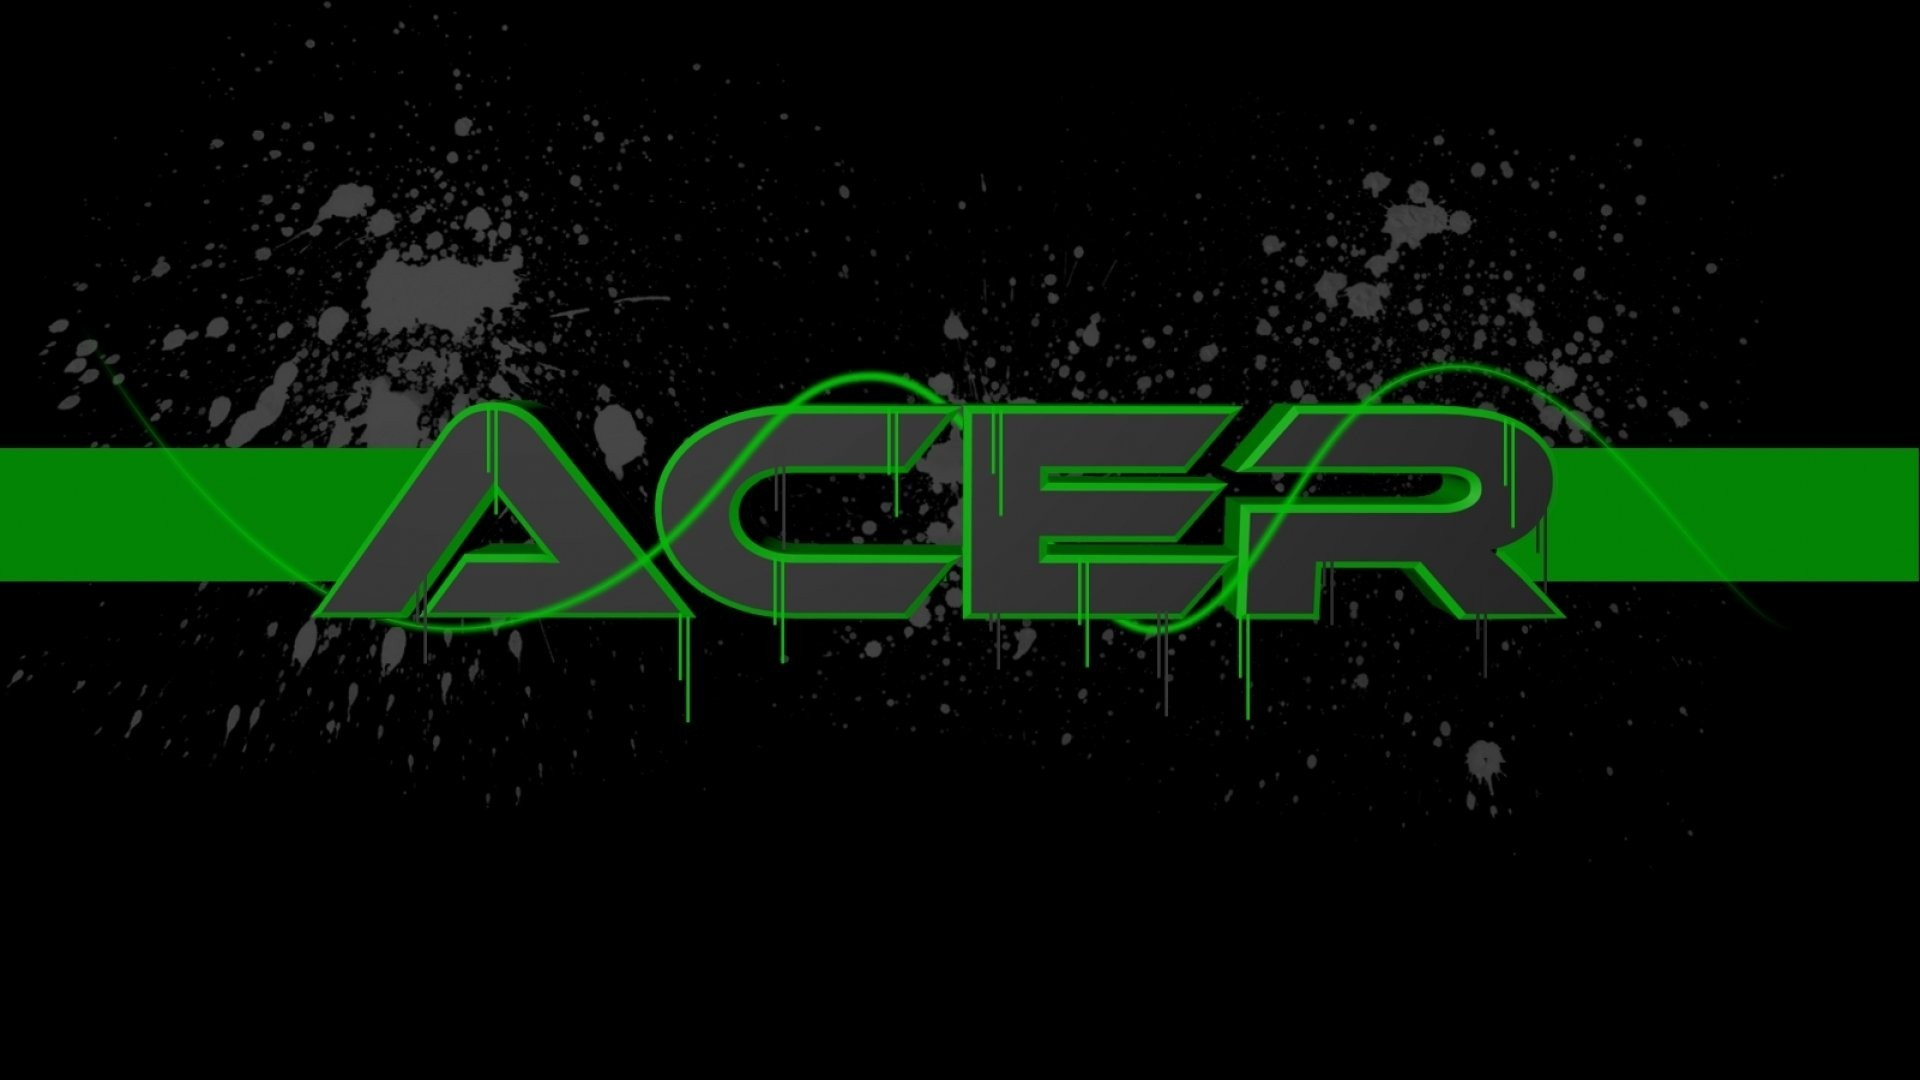 1920x1080 Acer Wallpaper p HD 1920×1080 Acer Logo Wallpapers (35 Wallpapers) |  Adorable